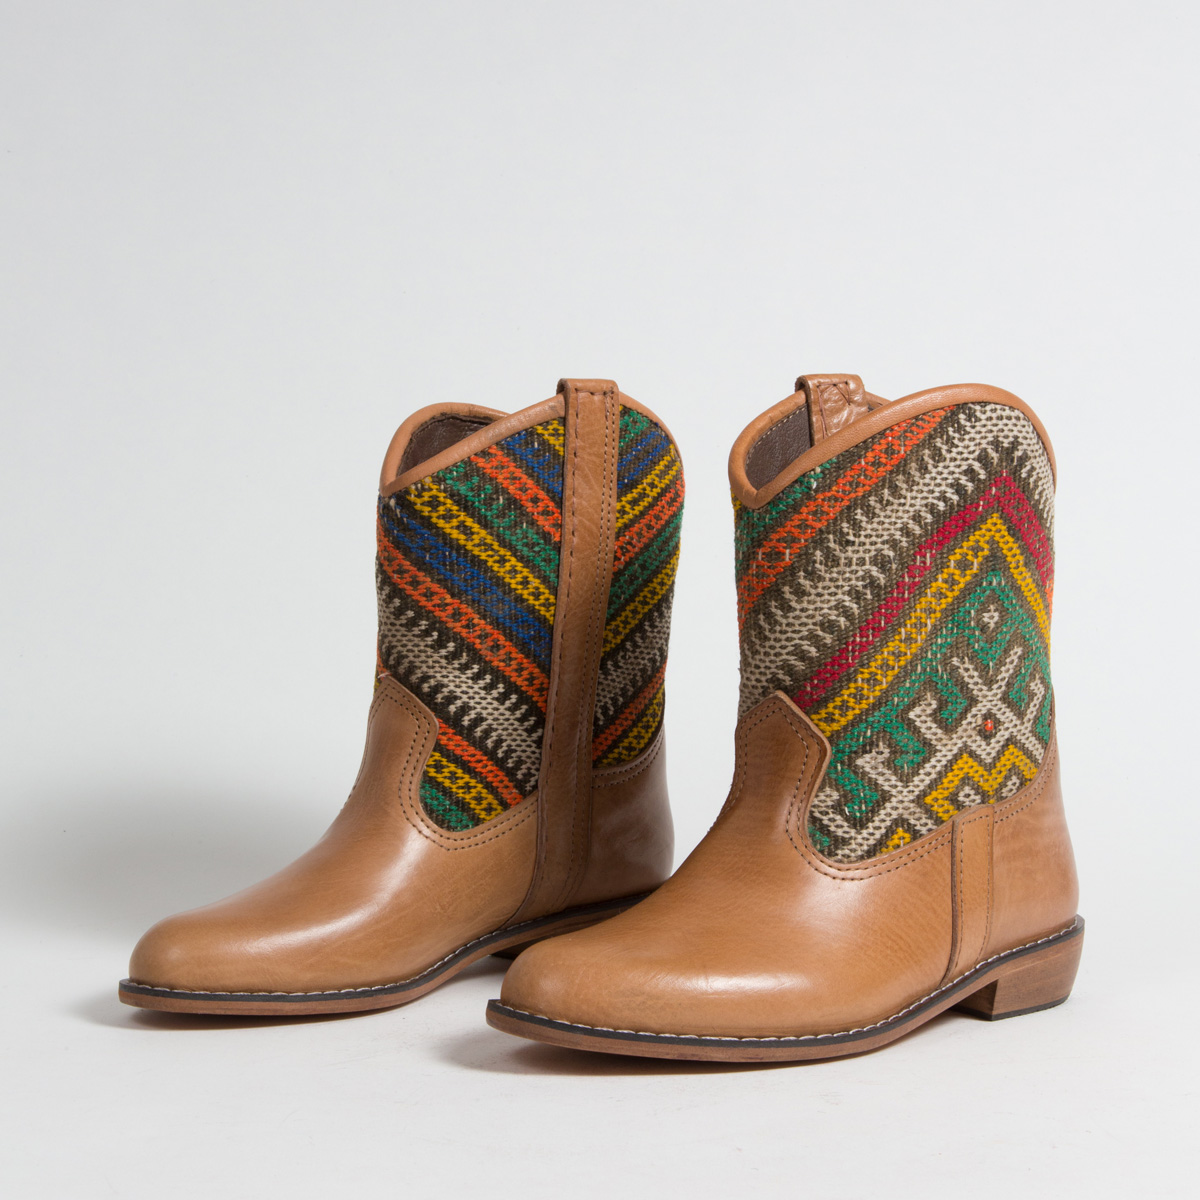 Bottines Kilim cuir mababouche artisanales (Réf. P4-38)